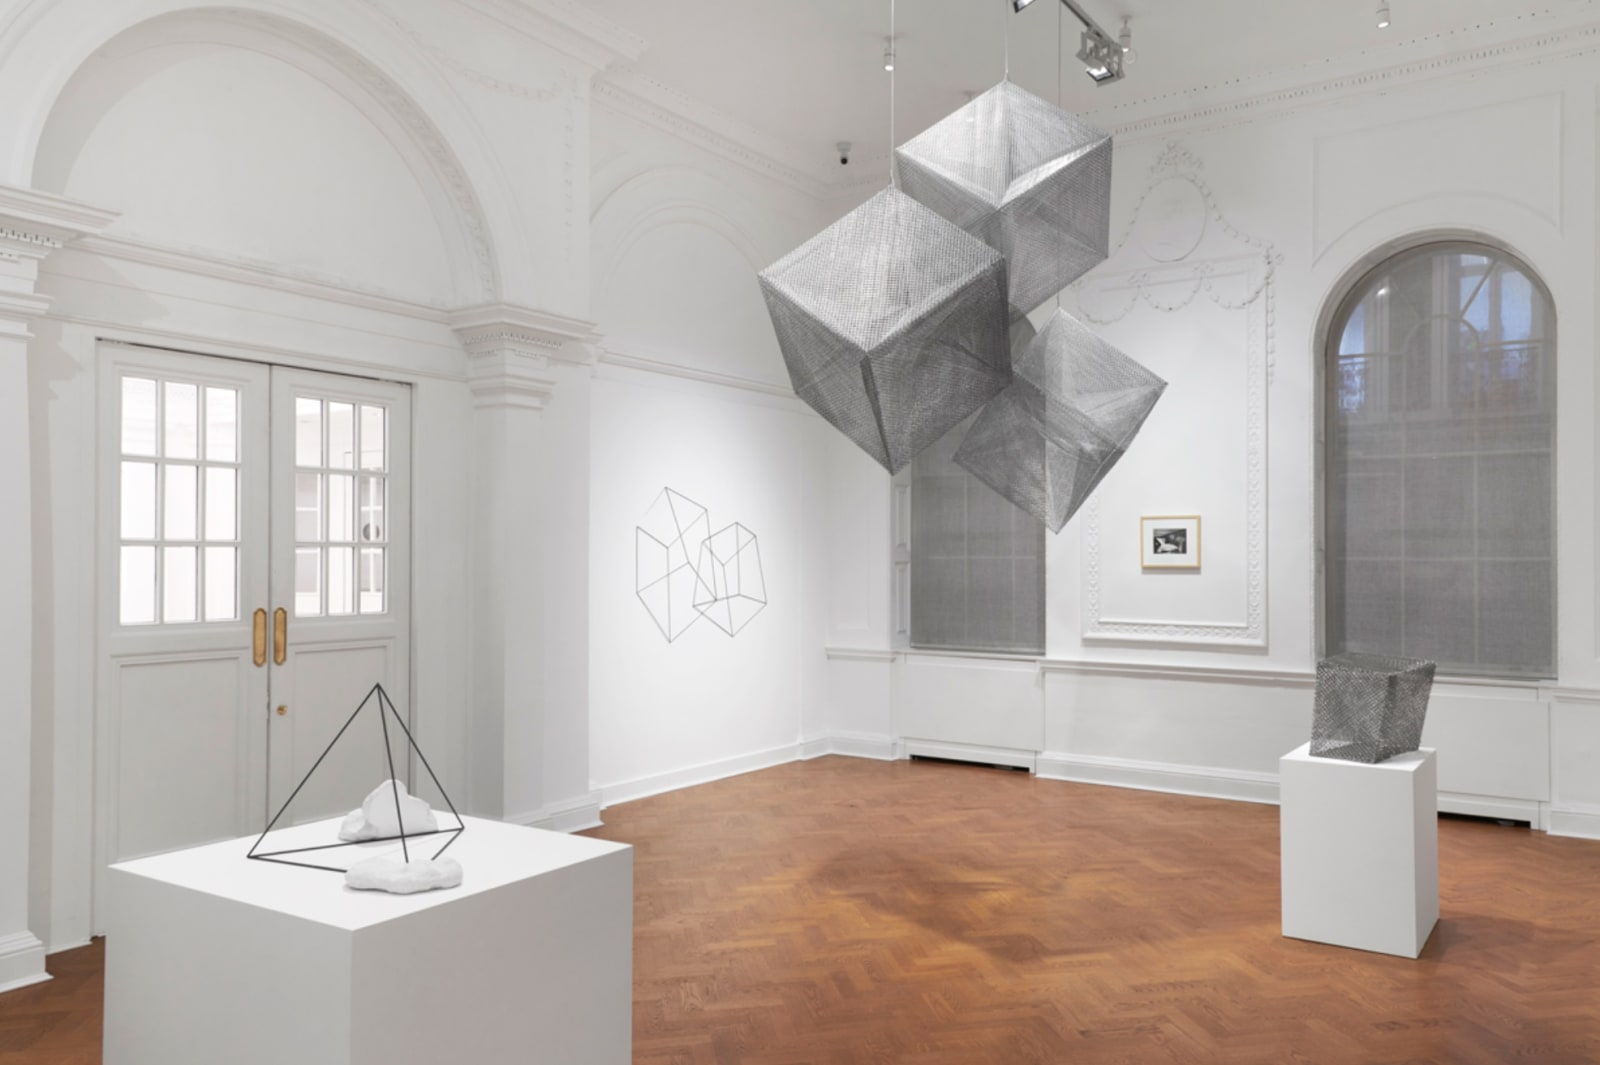 Volume 84, exhibition view at Galerie Thaddaeus Ropac, London, 2019